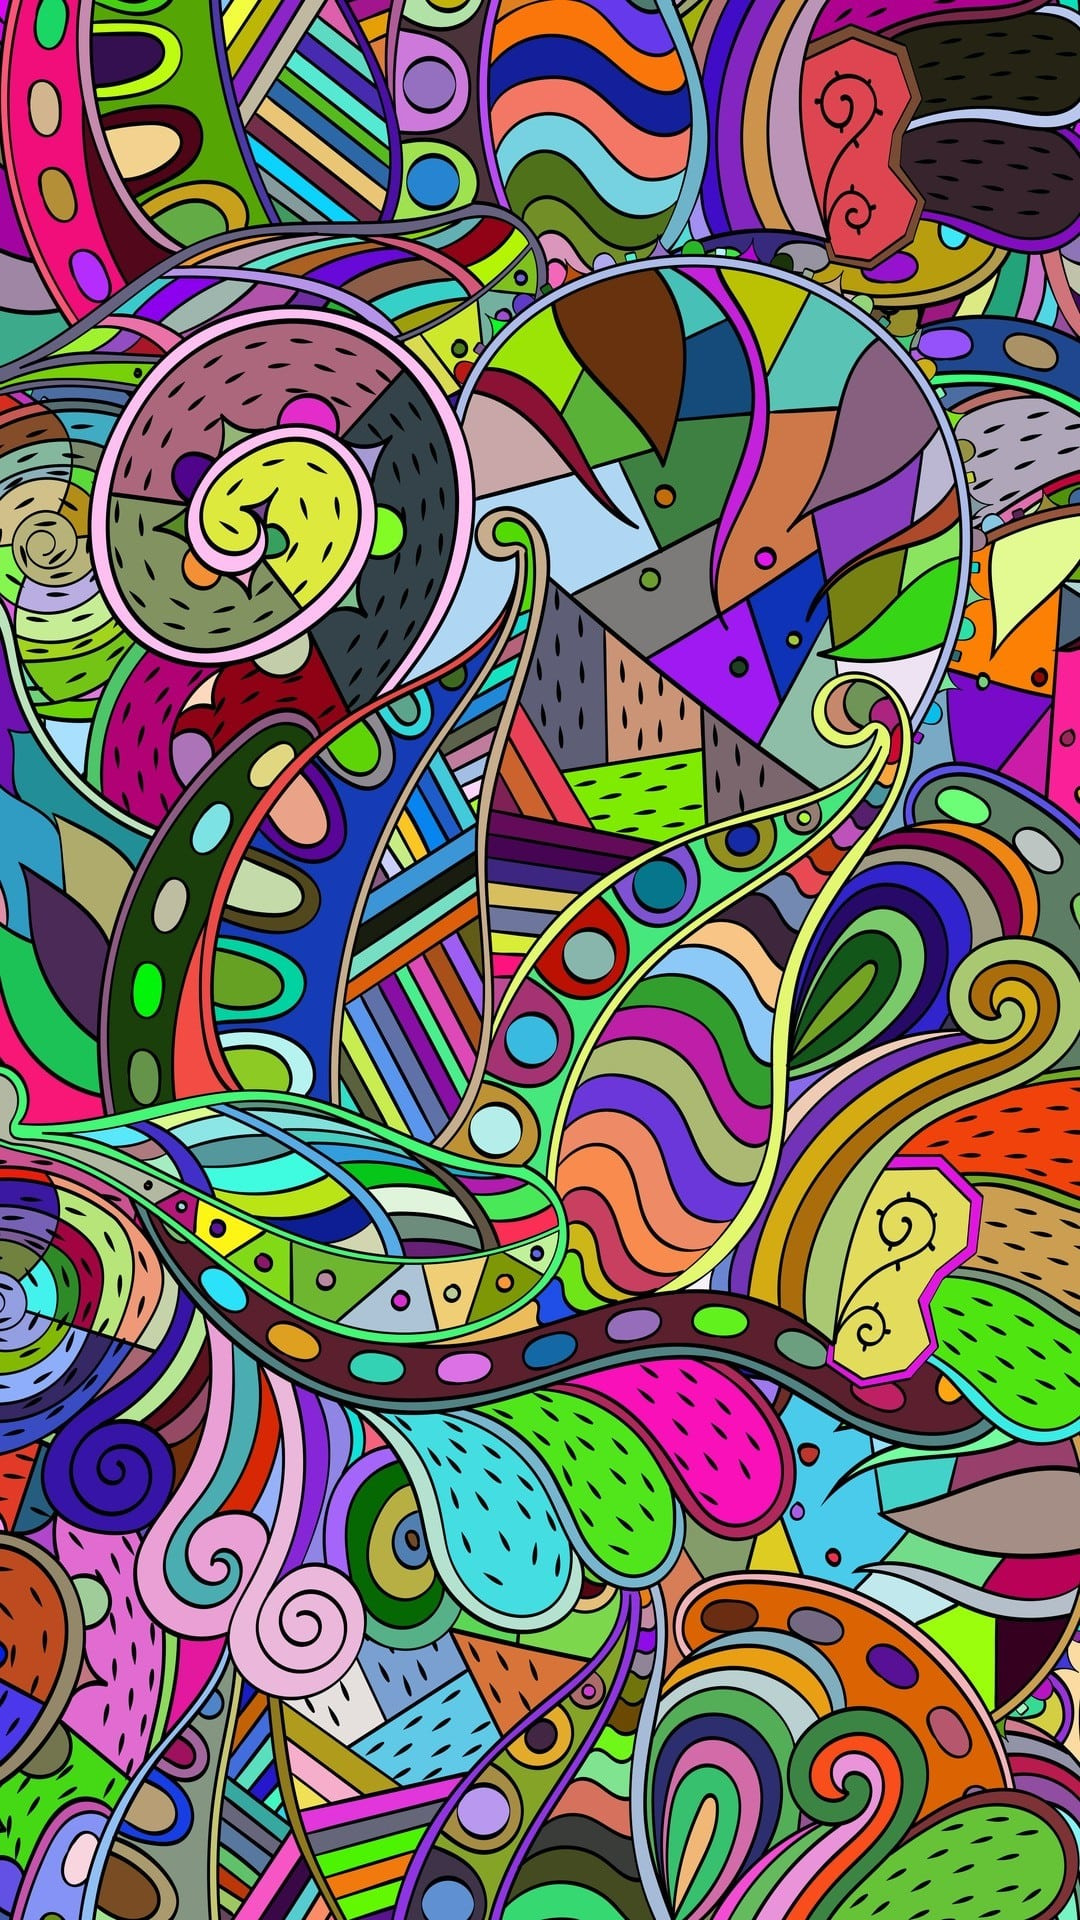 Colorful Doodle Wallpaper - KoLPaPer - Awesome Free HD Wallpapers